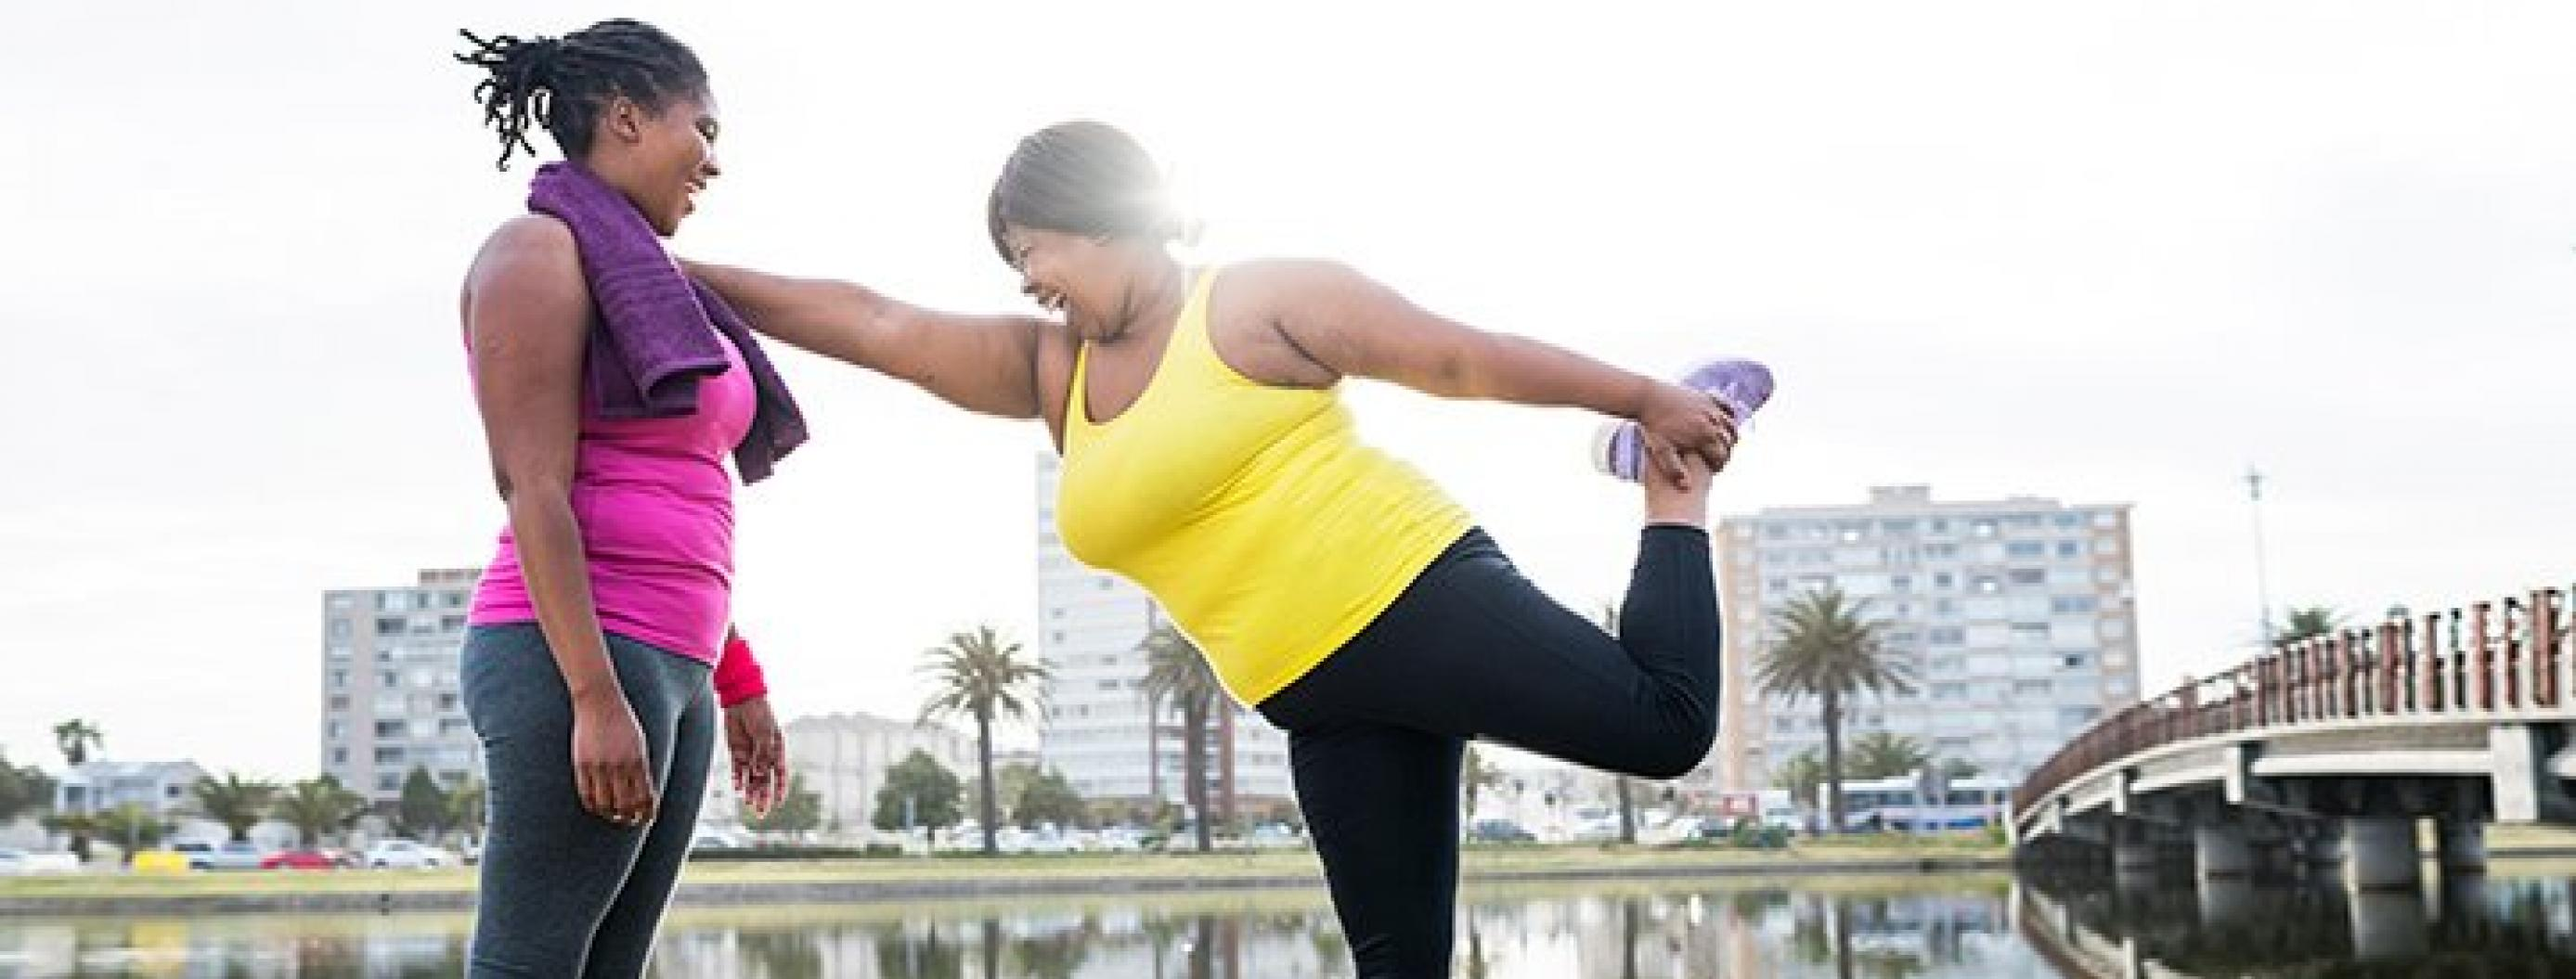 Exercise Won't Help You Lose Weight According to Science